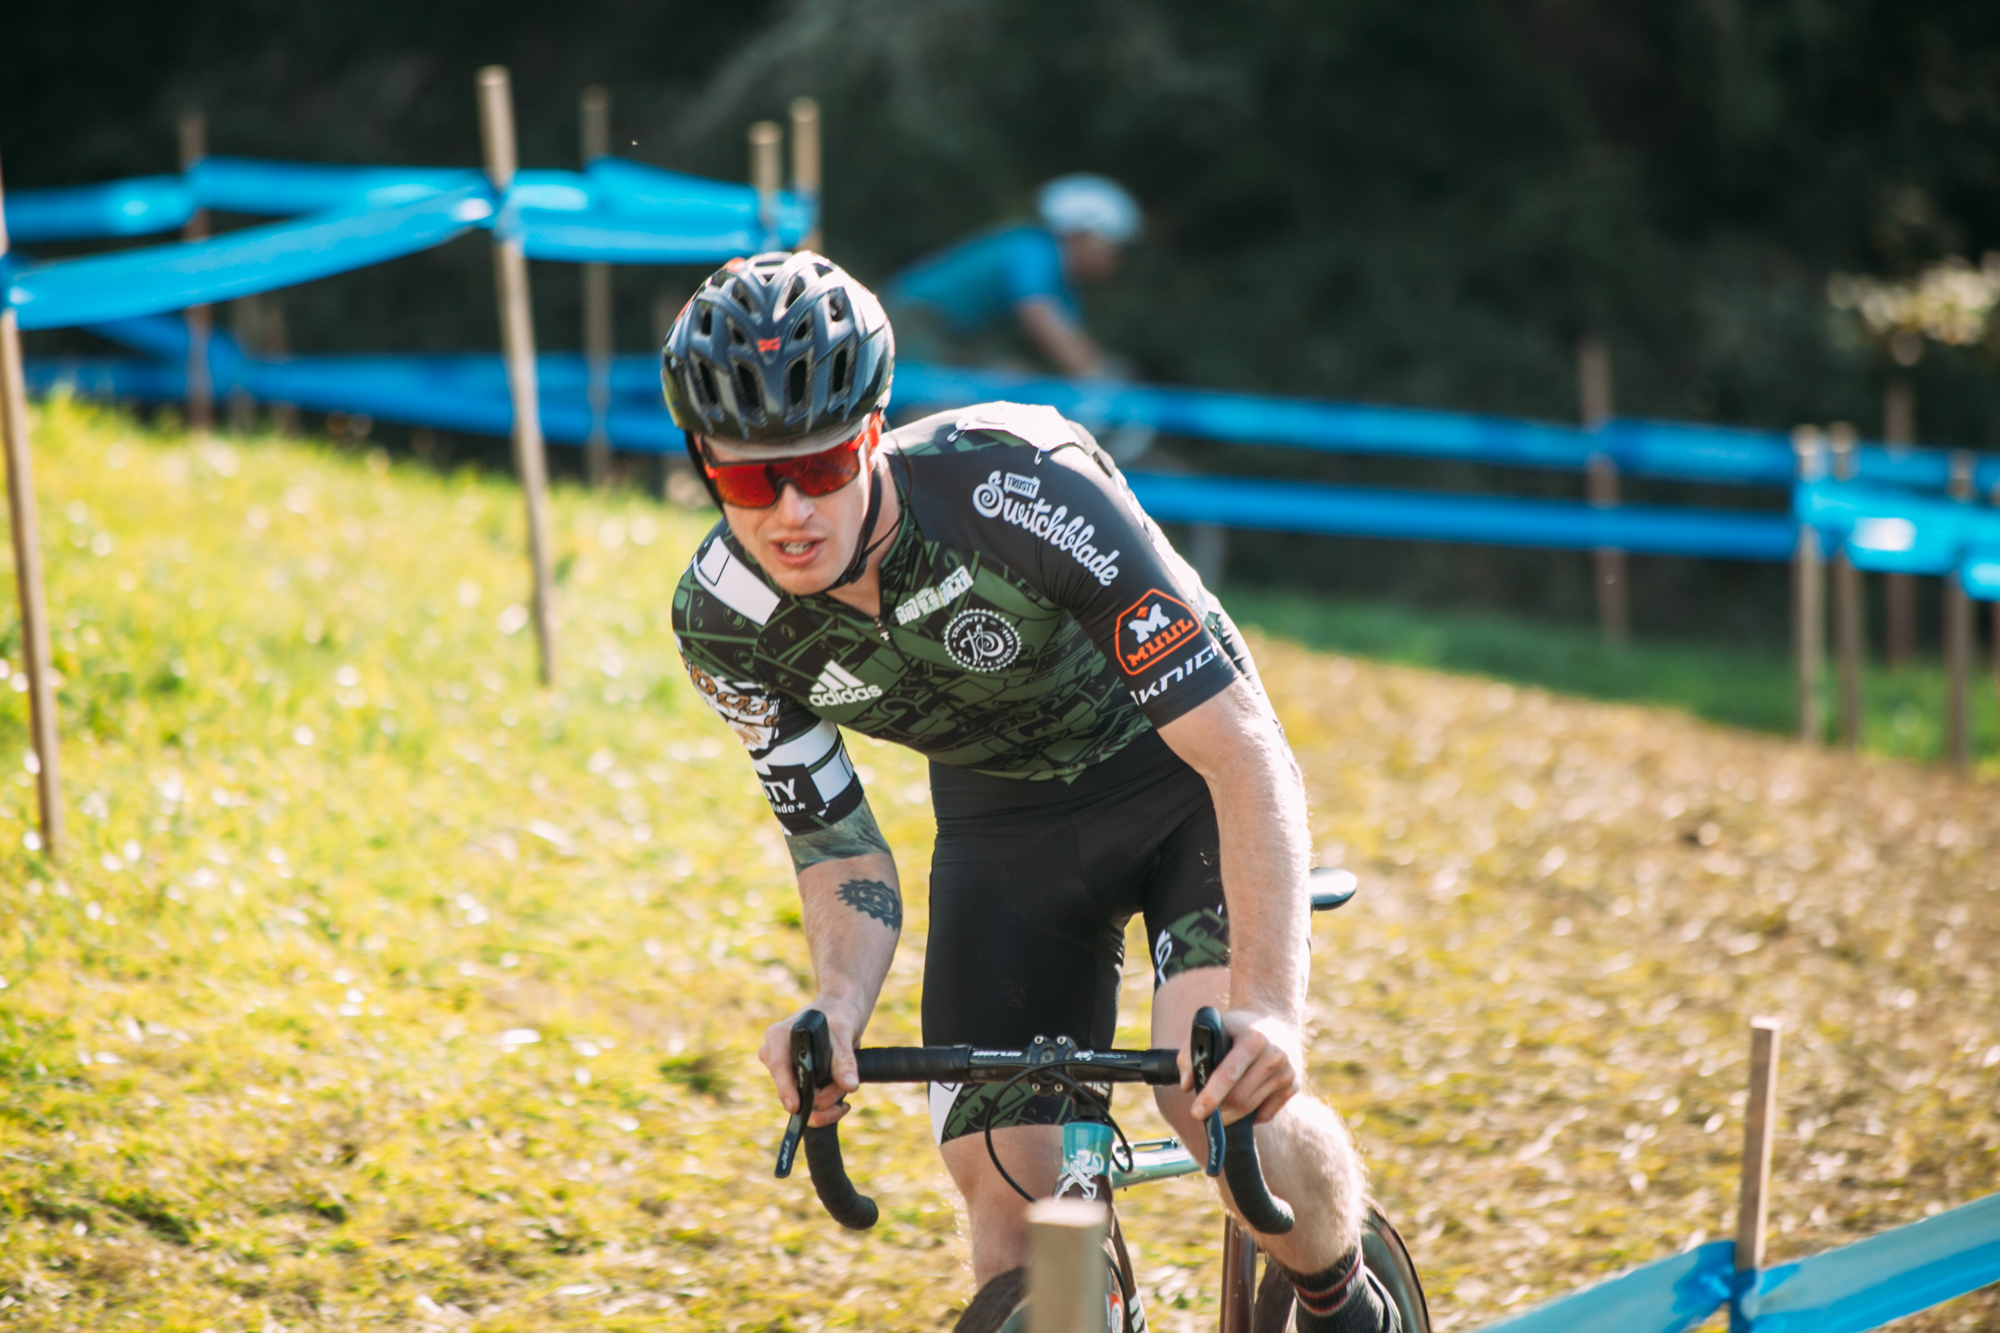 Cyclocross18_CCCX_RainierHS-93-mettlecycling.jpg